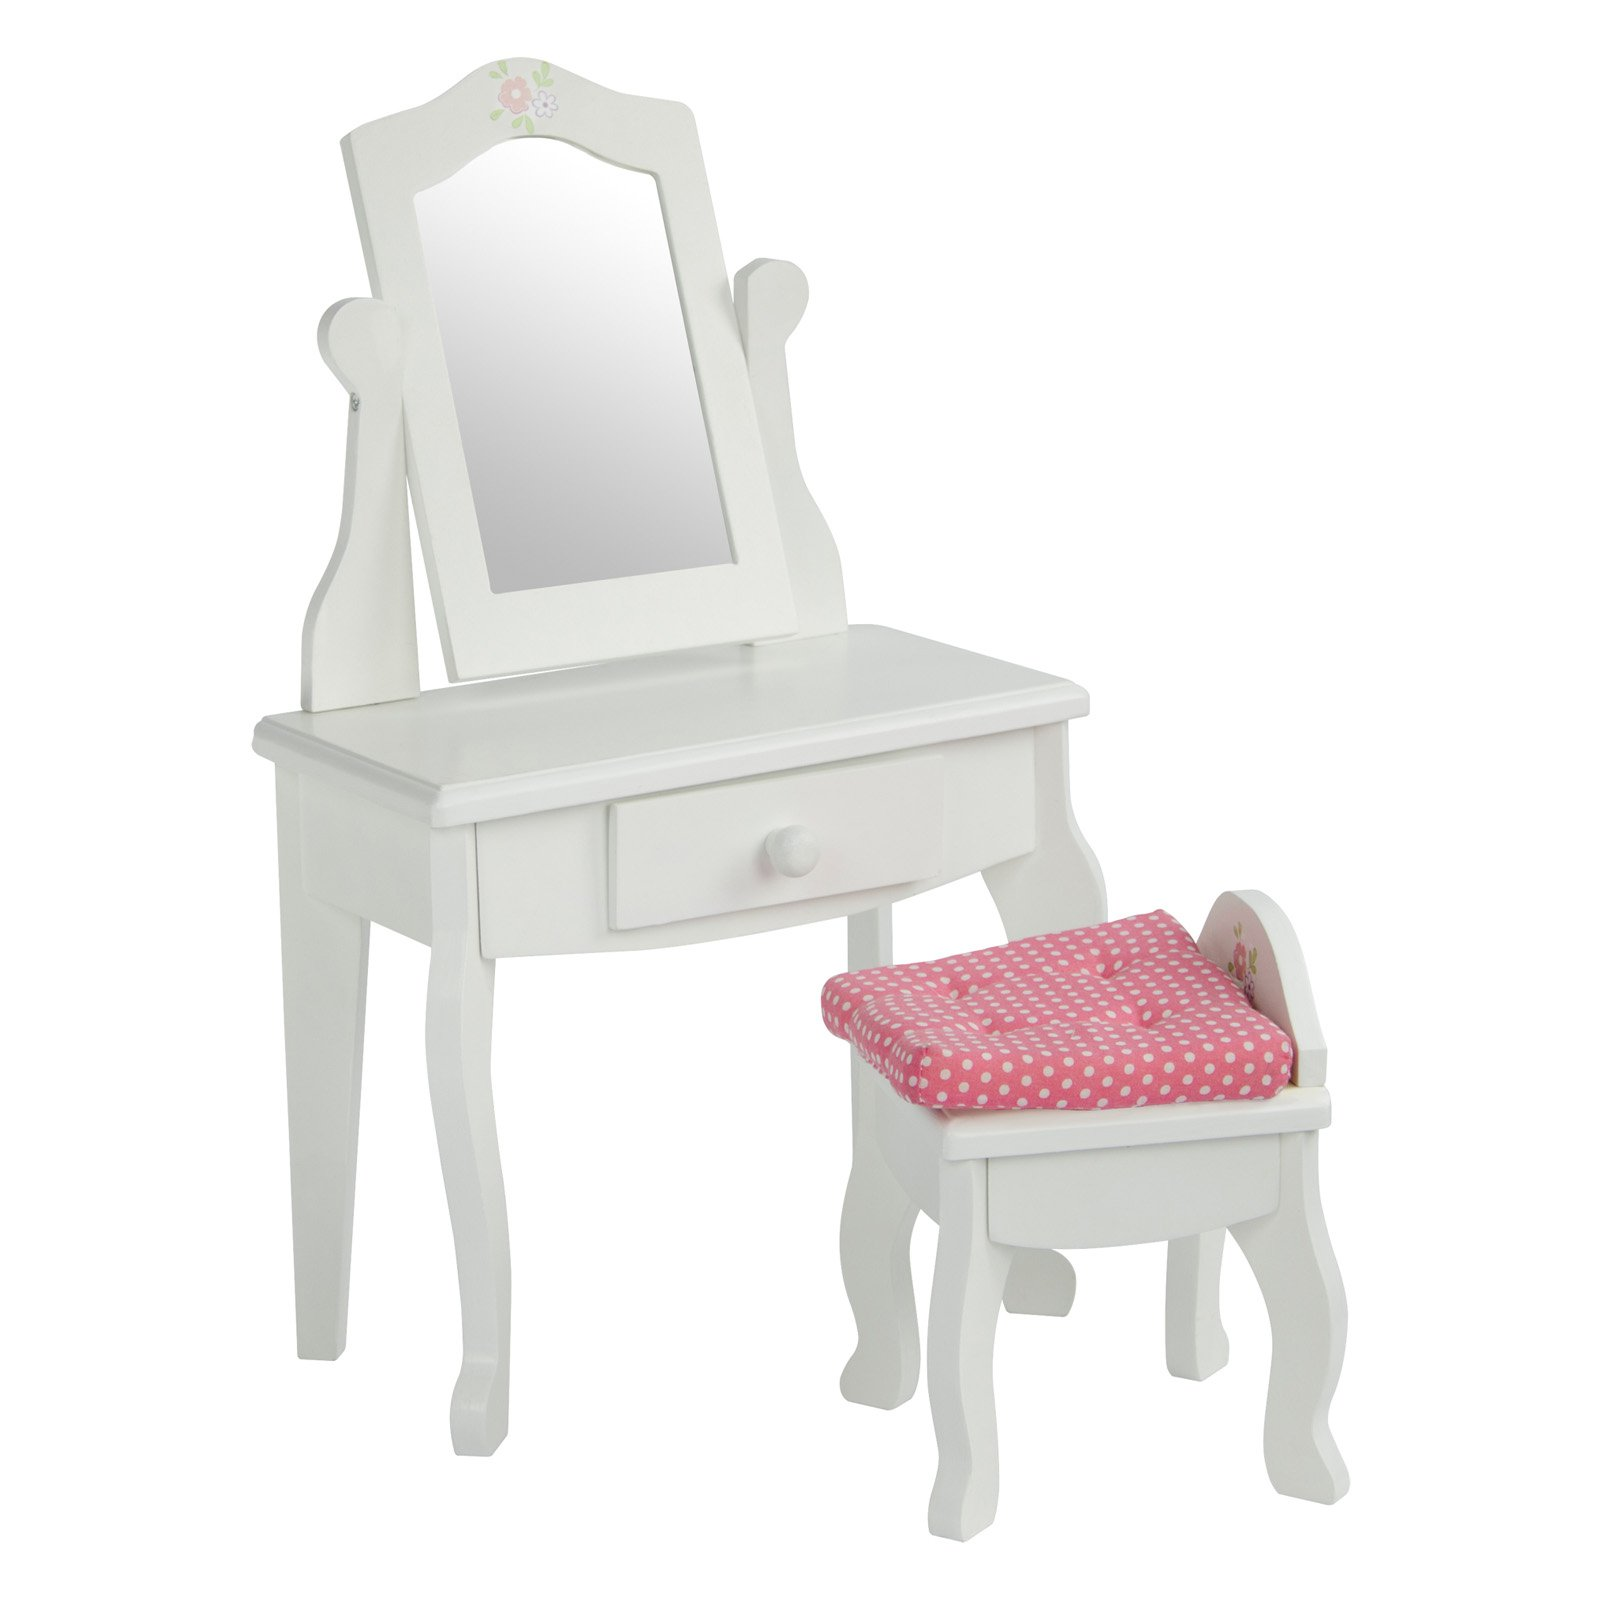 Oliviau0027s Little World - Princess Vanity Table and Chair Set with Rotatable Mirror (White)  sc 1 st  Walmart & Oliviau0027s Little World - Princess Vanity Table and Chair Set with ...